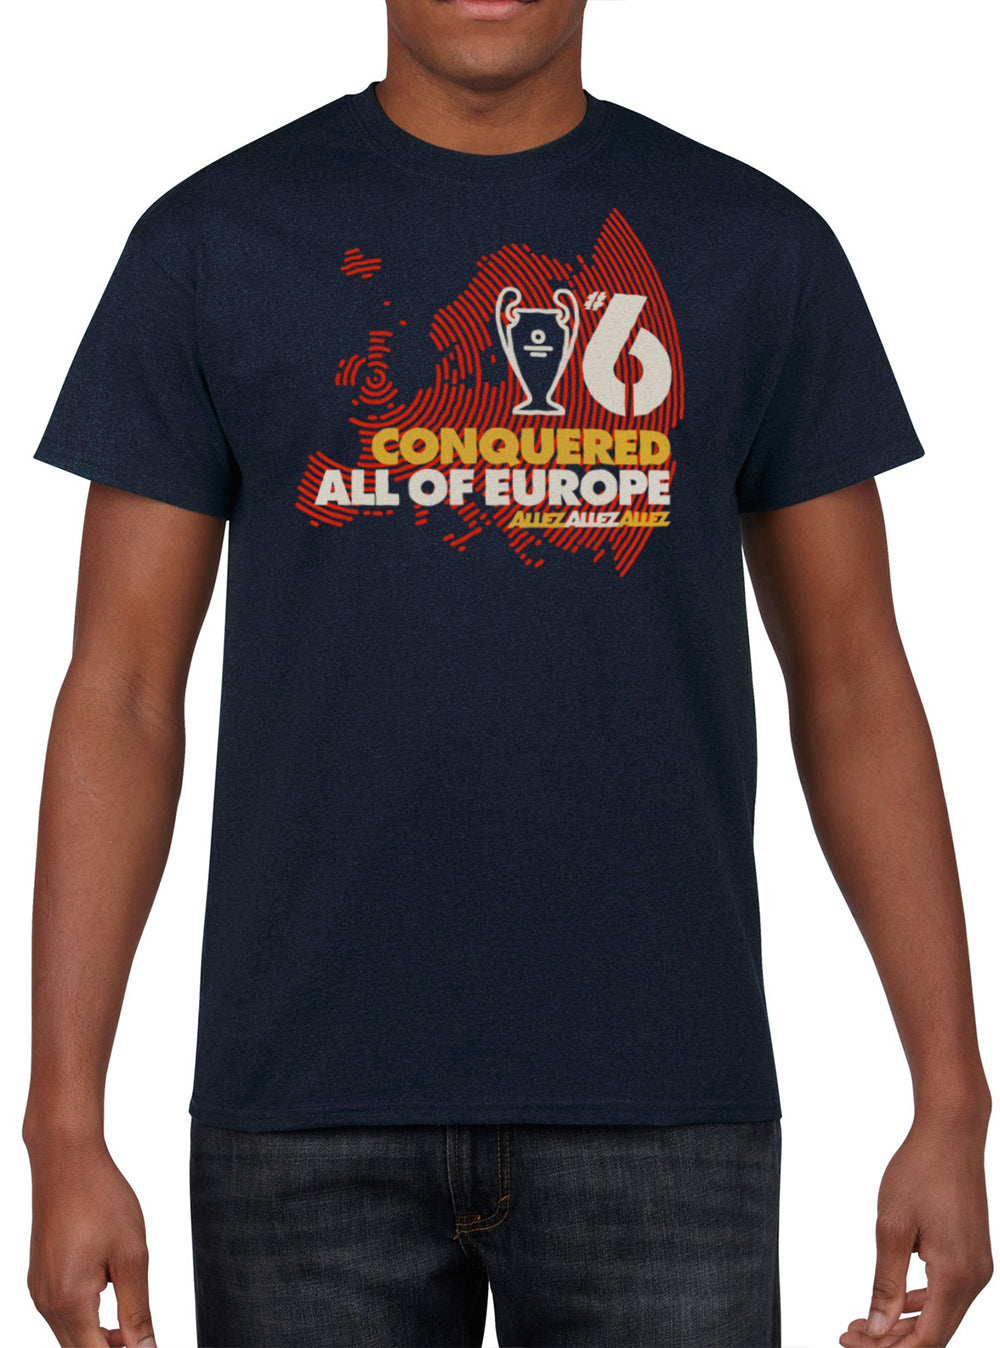 17 SIX TIMES 'Conquered All Of Europe' Edition Tee